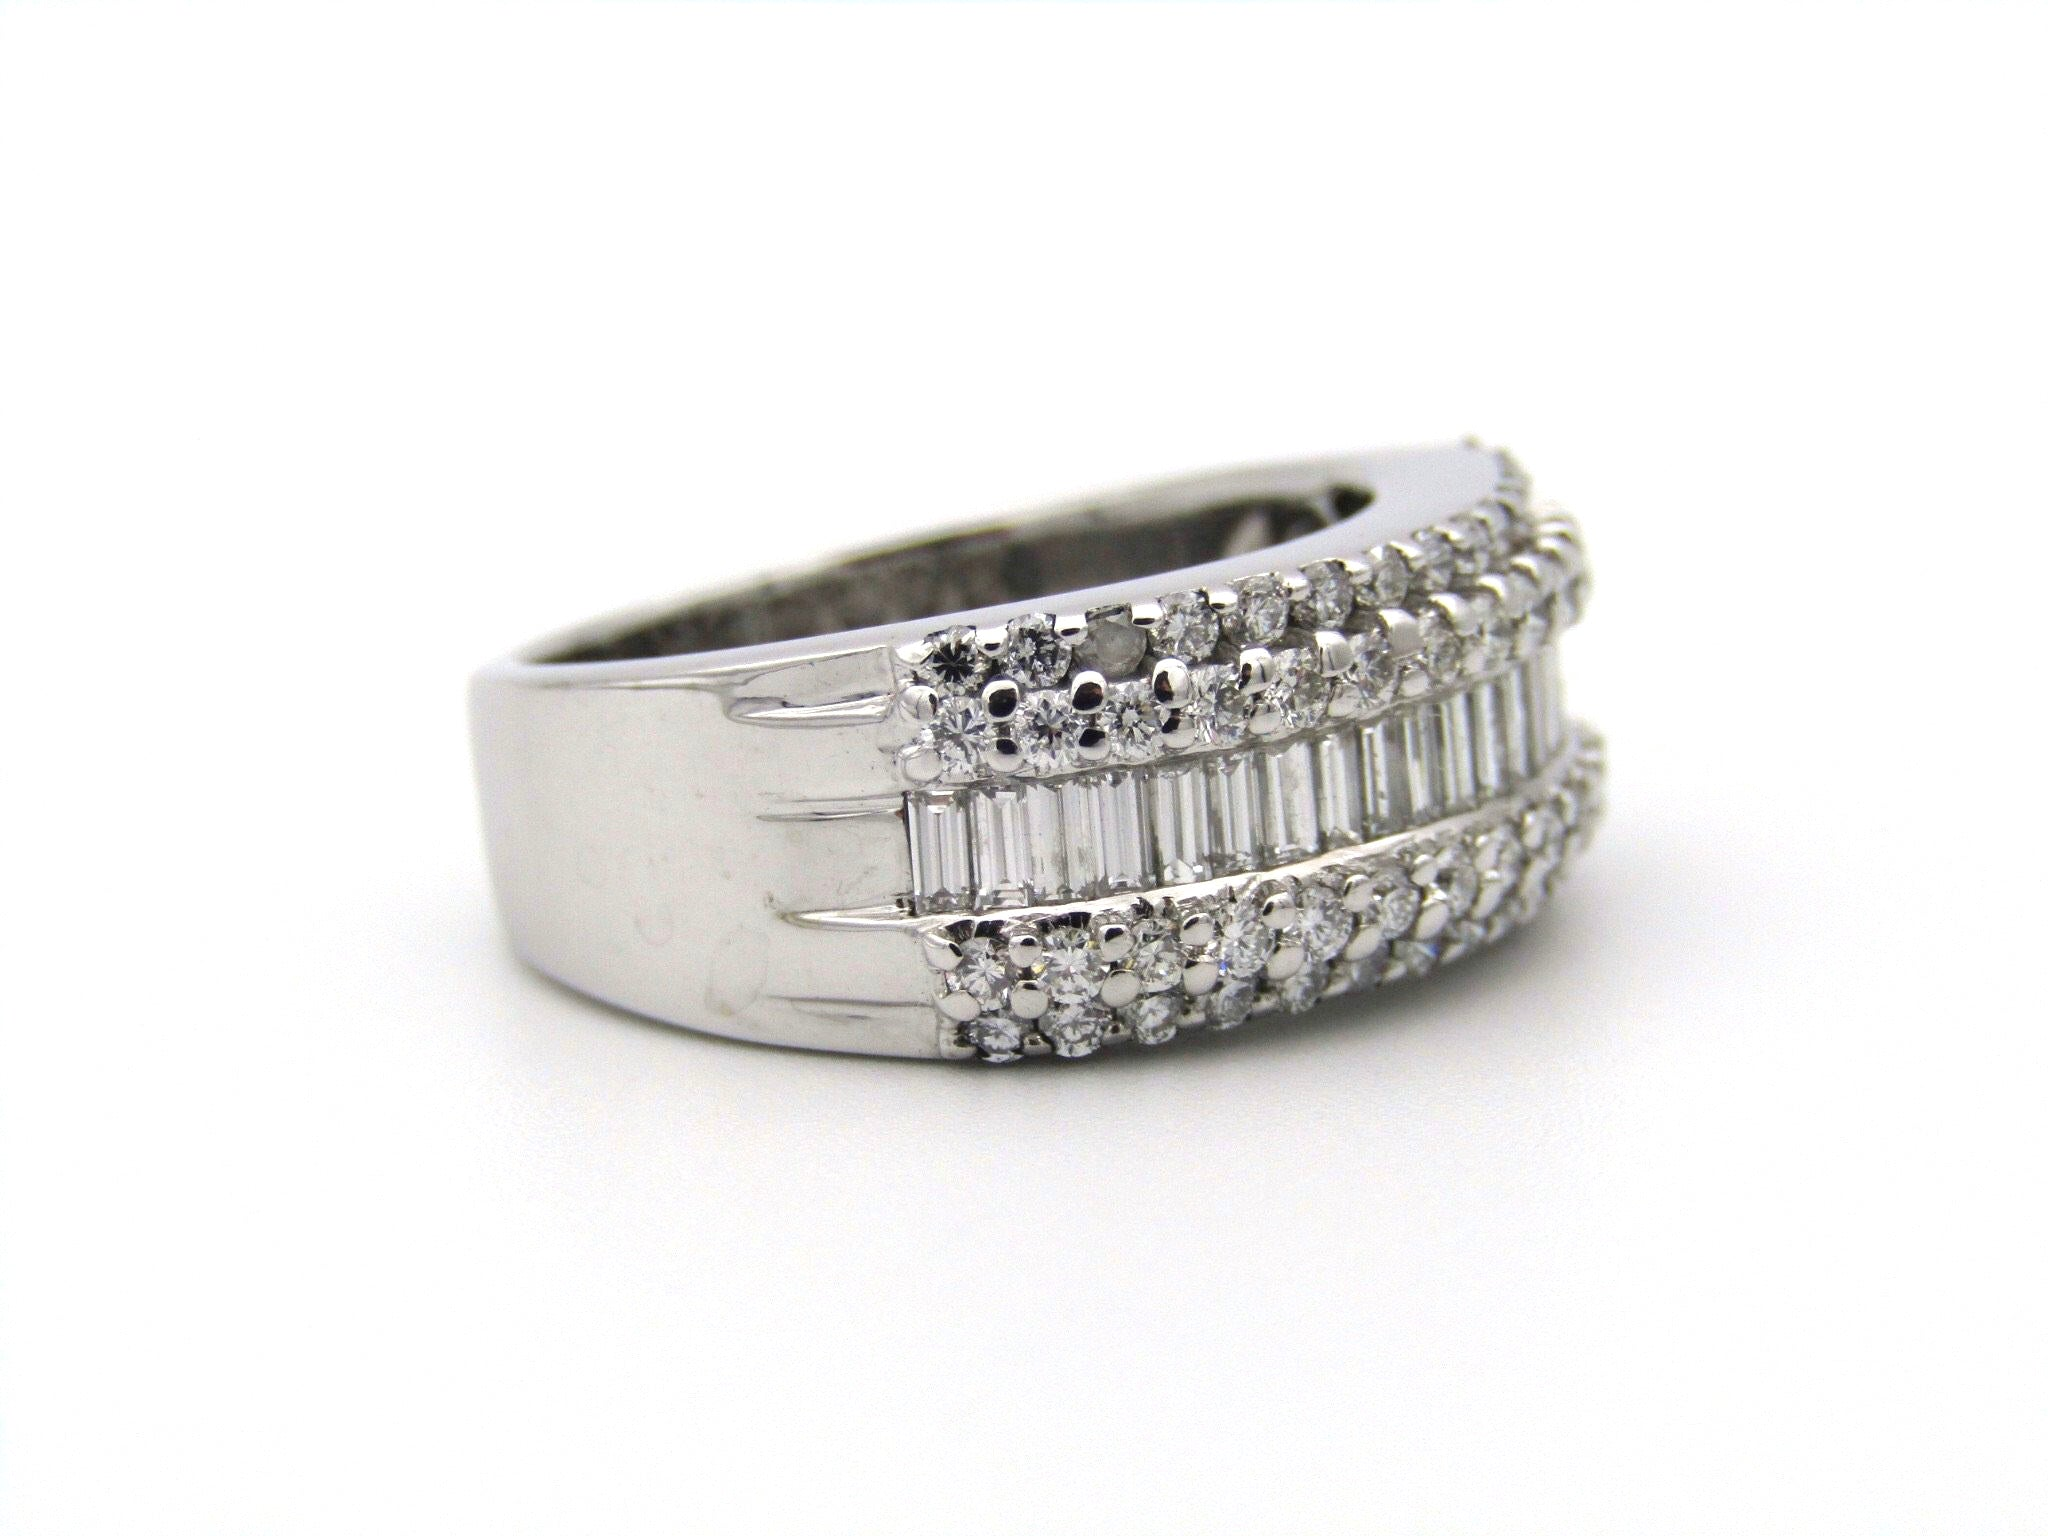 18K gold baguette and round brilliant cut diamond ring.